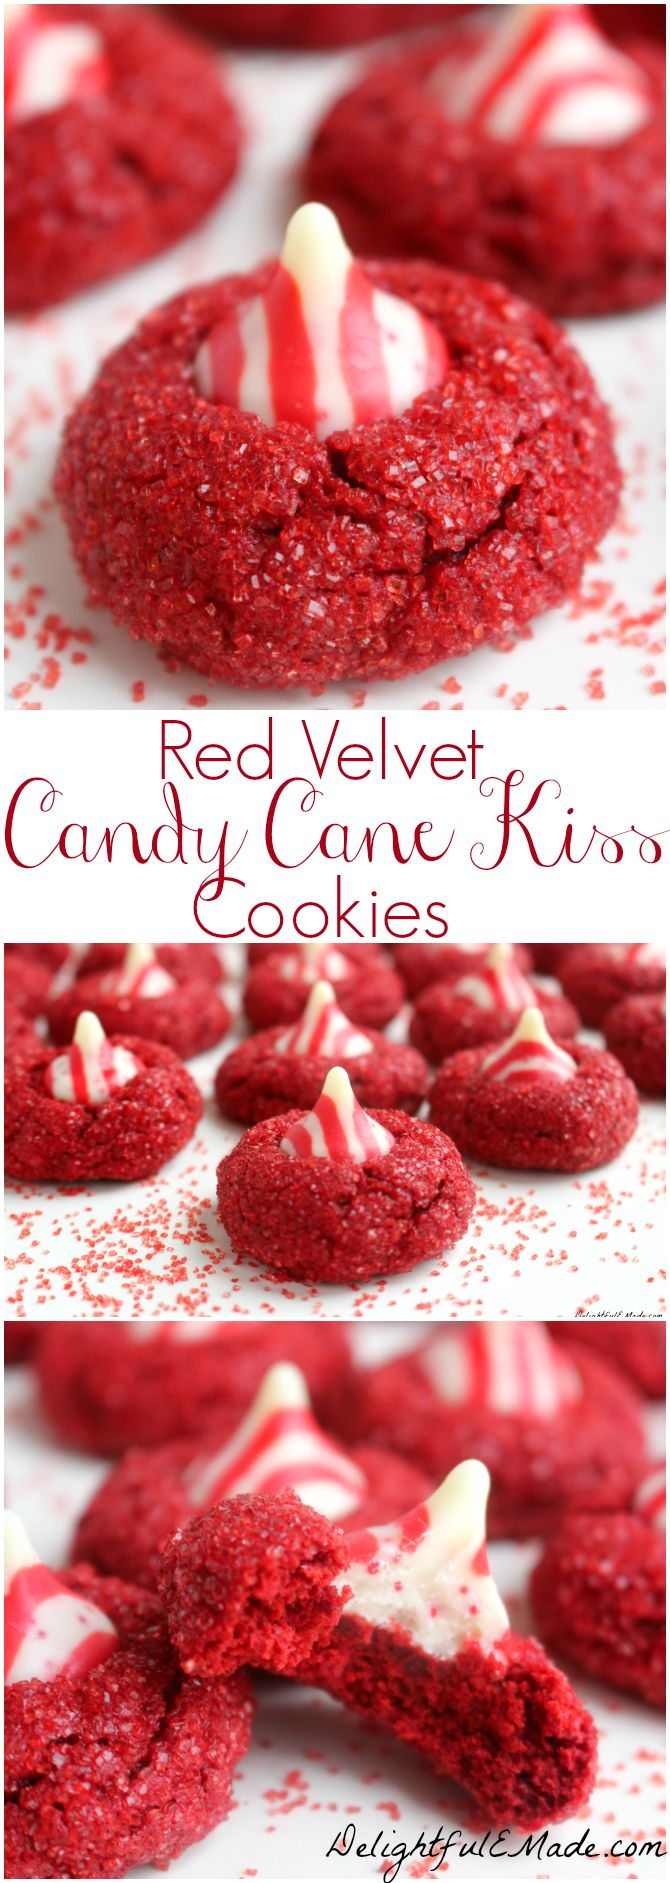 With a pretty sparkle and topped with a candy cane kiss, these fabulous holiday cookies will be the star of your holiday season!